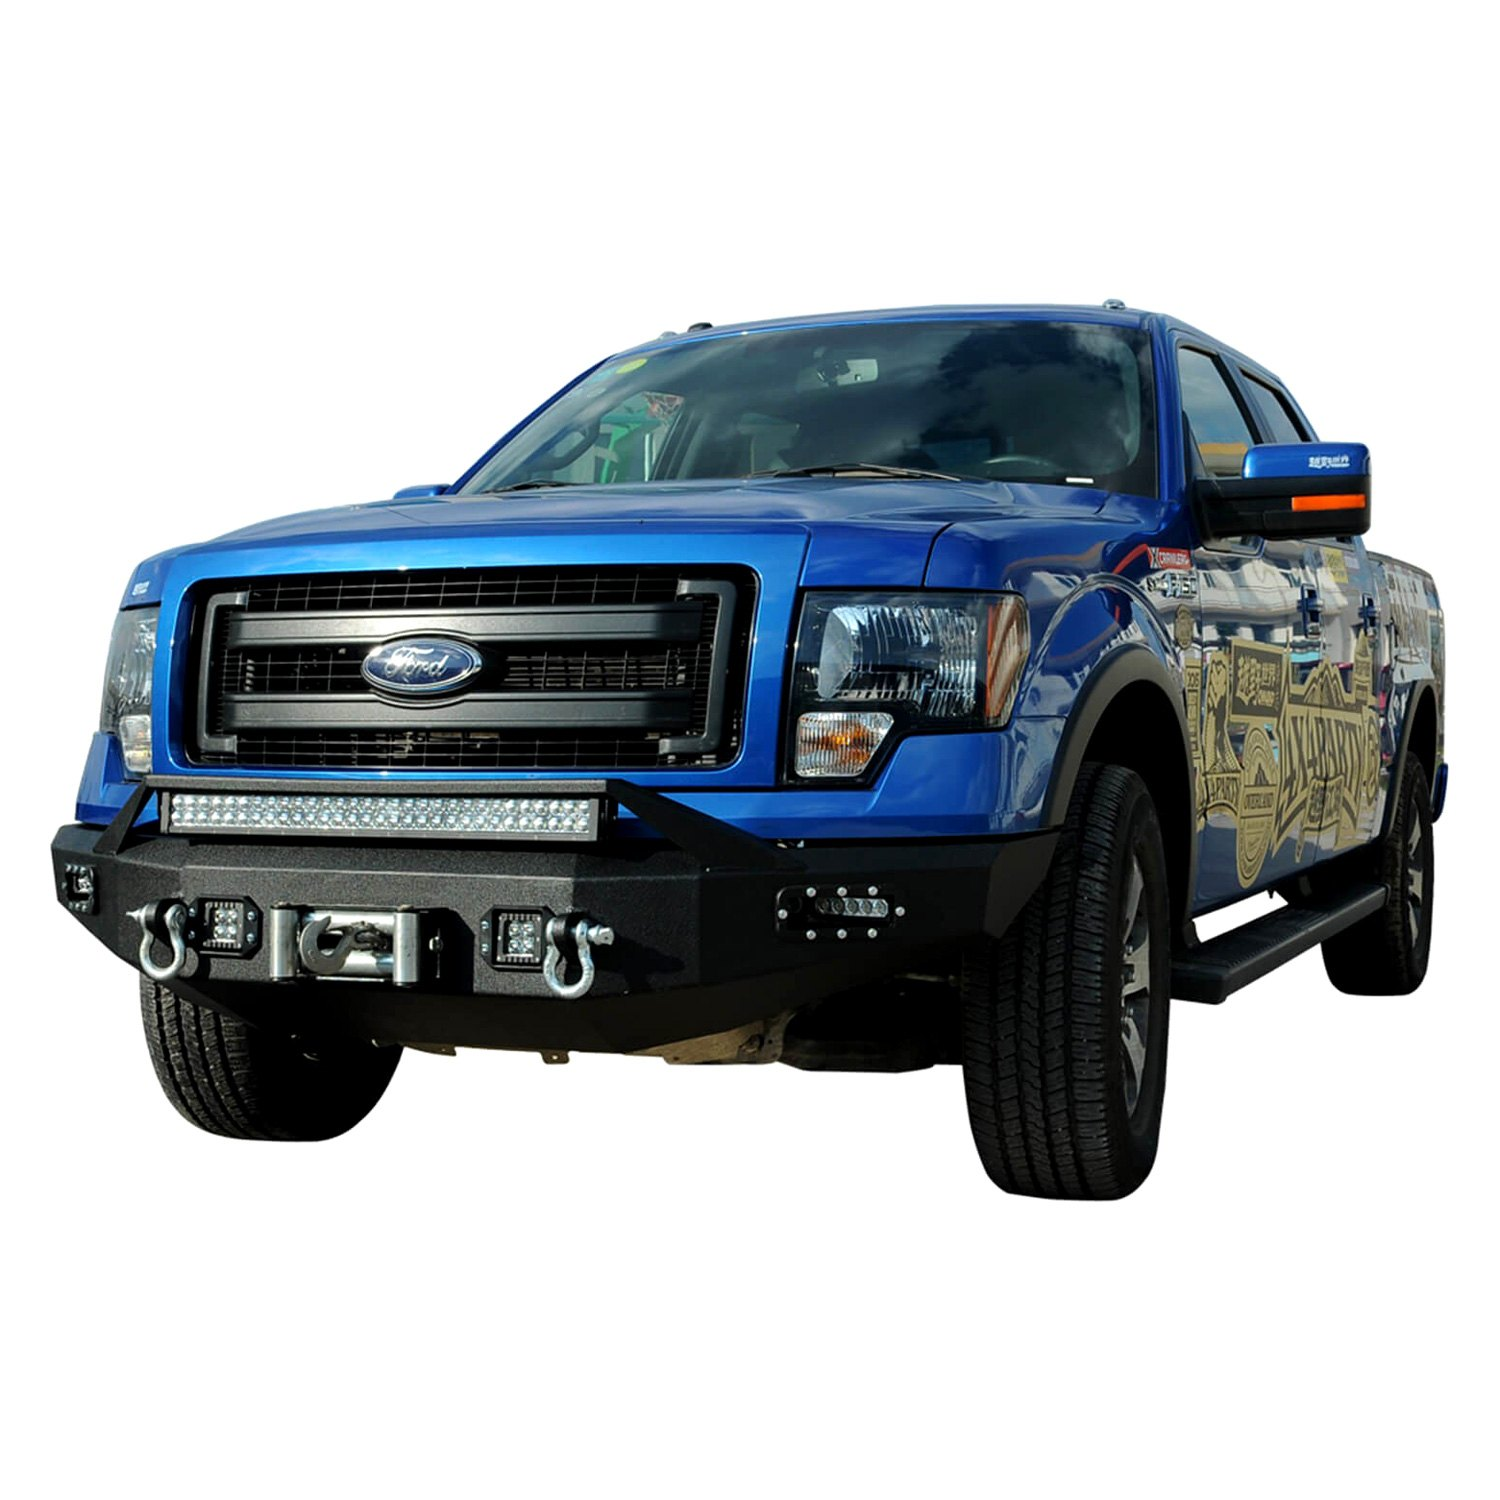 Paramount ford f 150 2010 full width black front winch hd bumper for Ford f 150 exterior accessories